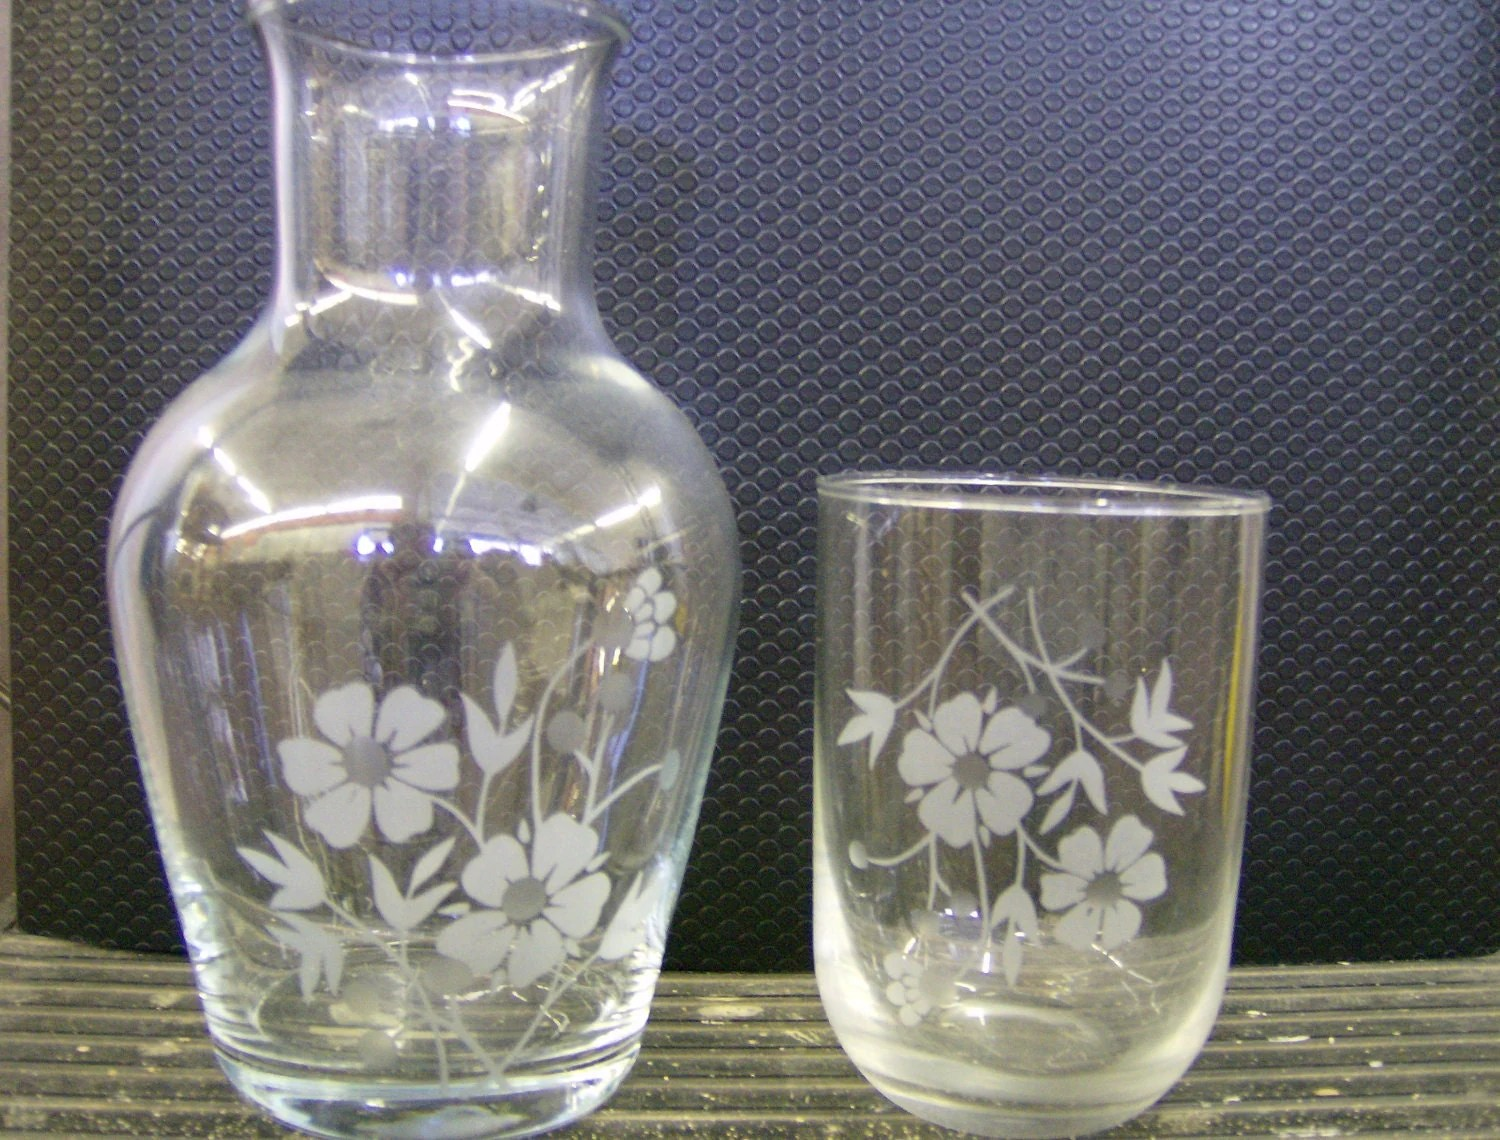 Bedside Water Carafe And Glass Ct0426v Lovely Guest Bedside Water Pitcher And Glass Floral